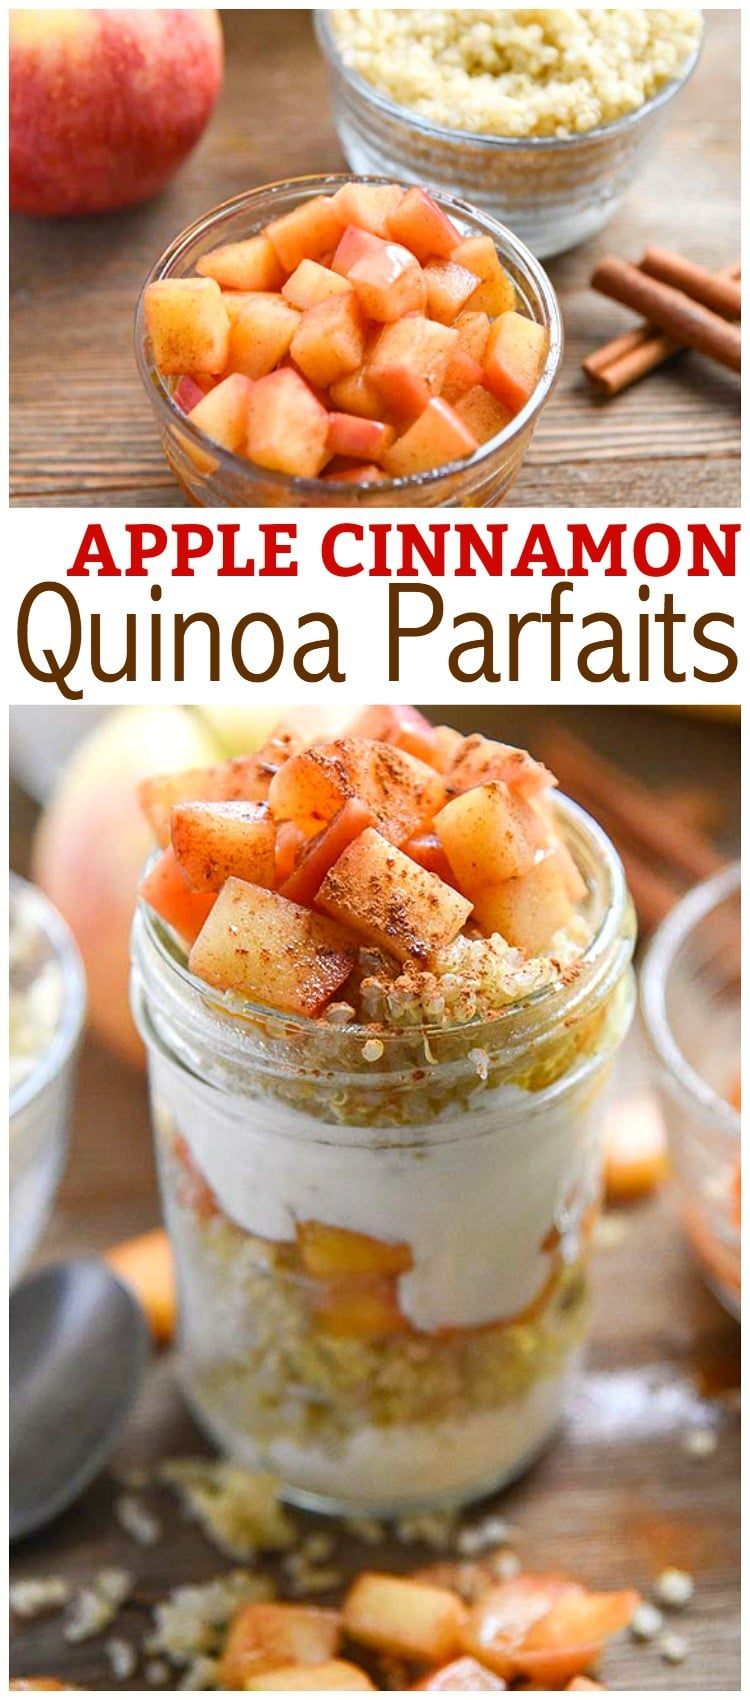 Homemade Apple Cinnamon Quinoa Parfaits, enjoy this delicious fall treat with freshly picked apples!